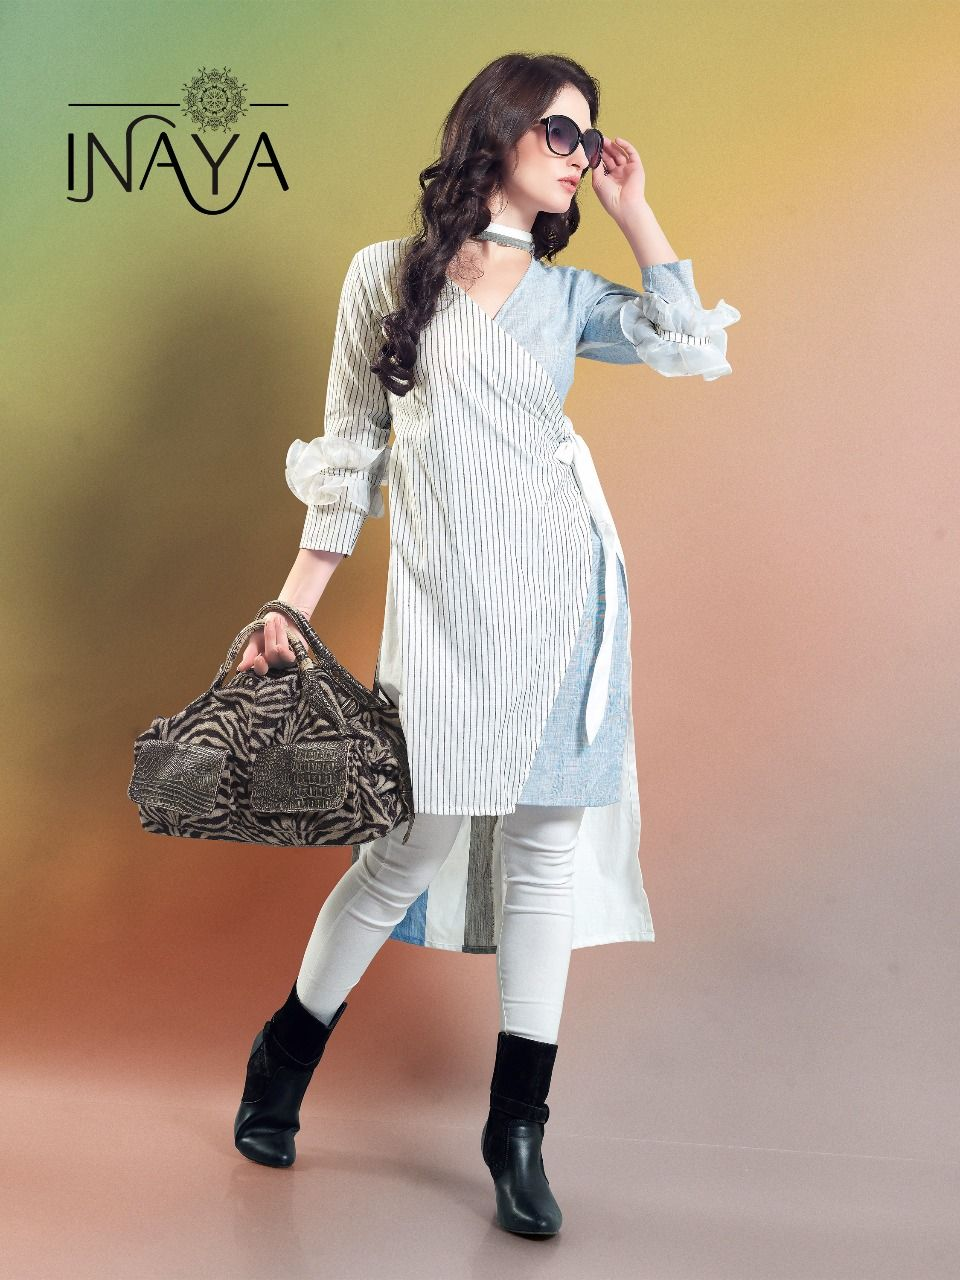 ce5a3f4788 INAYA BY STUDIO LIBAS DESIGNER OVERLAPPING SHIRT KURTIS WHOLESALE SUPPLIER  AT SURAT Contect me for Order & More Details: Whatsapp :+91 7874482383  Email: ...